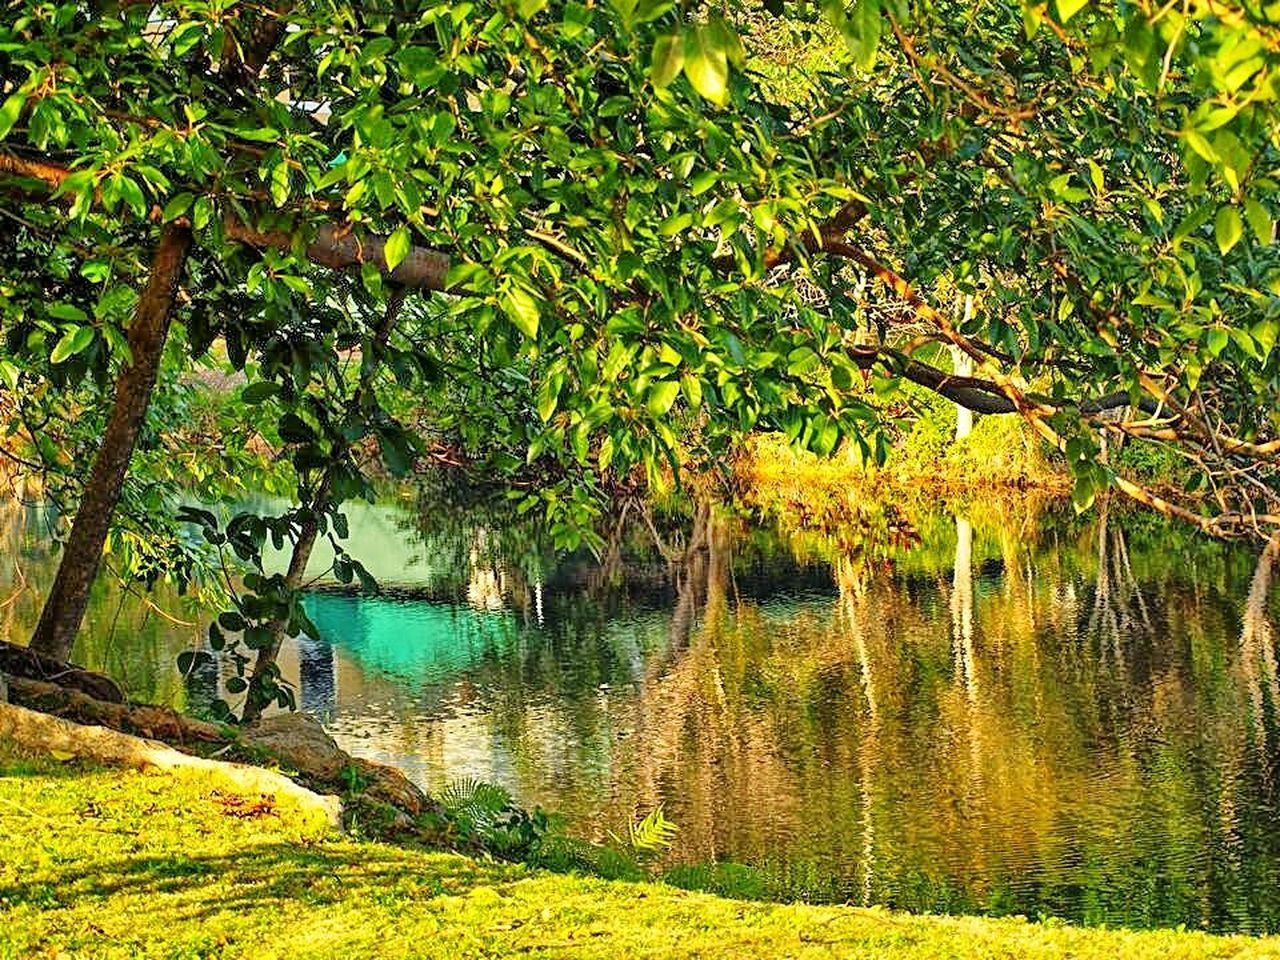 tree, water, nature, lake, scenics, beauty in nature, tranquil scene, tranquility, outdoors, reflection, no people, growth, day, landscape, plant, forest